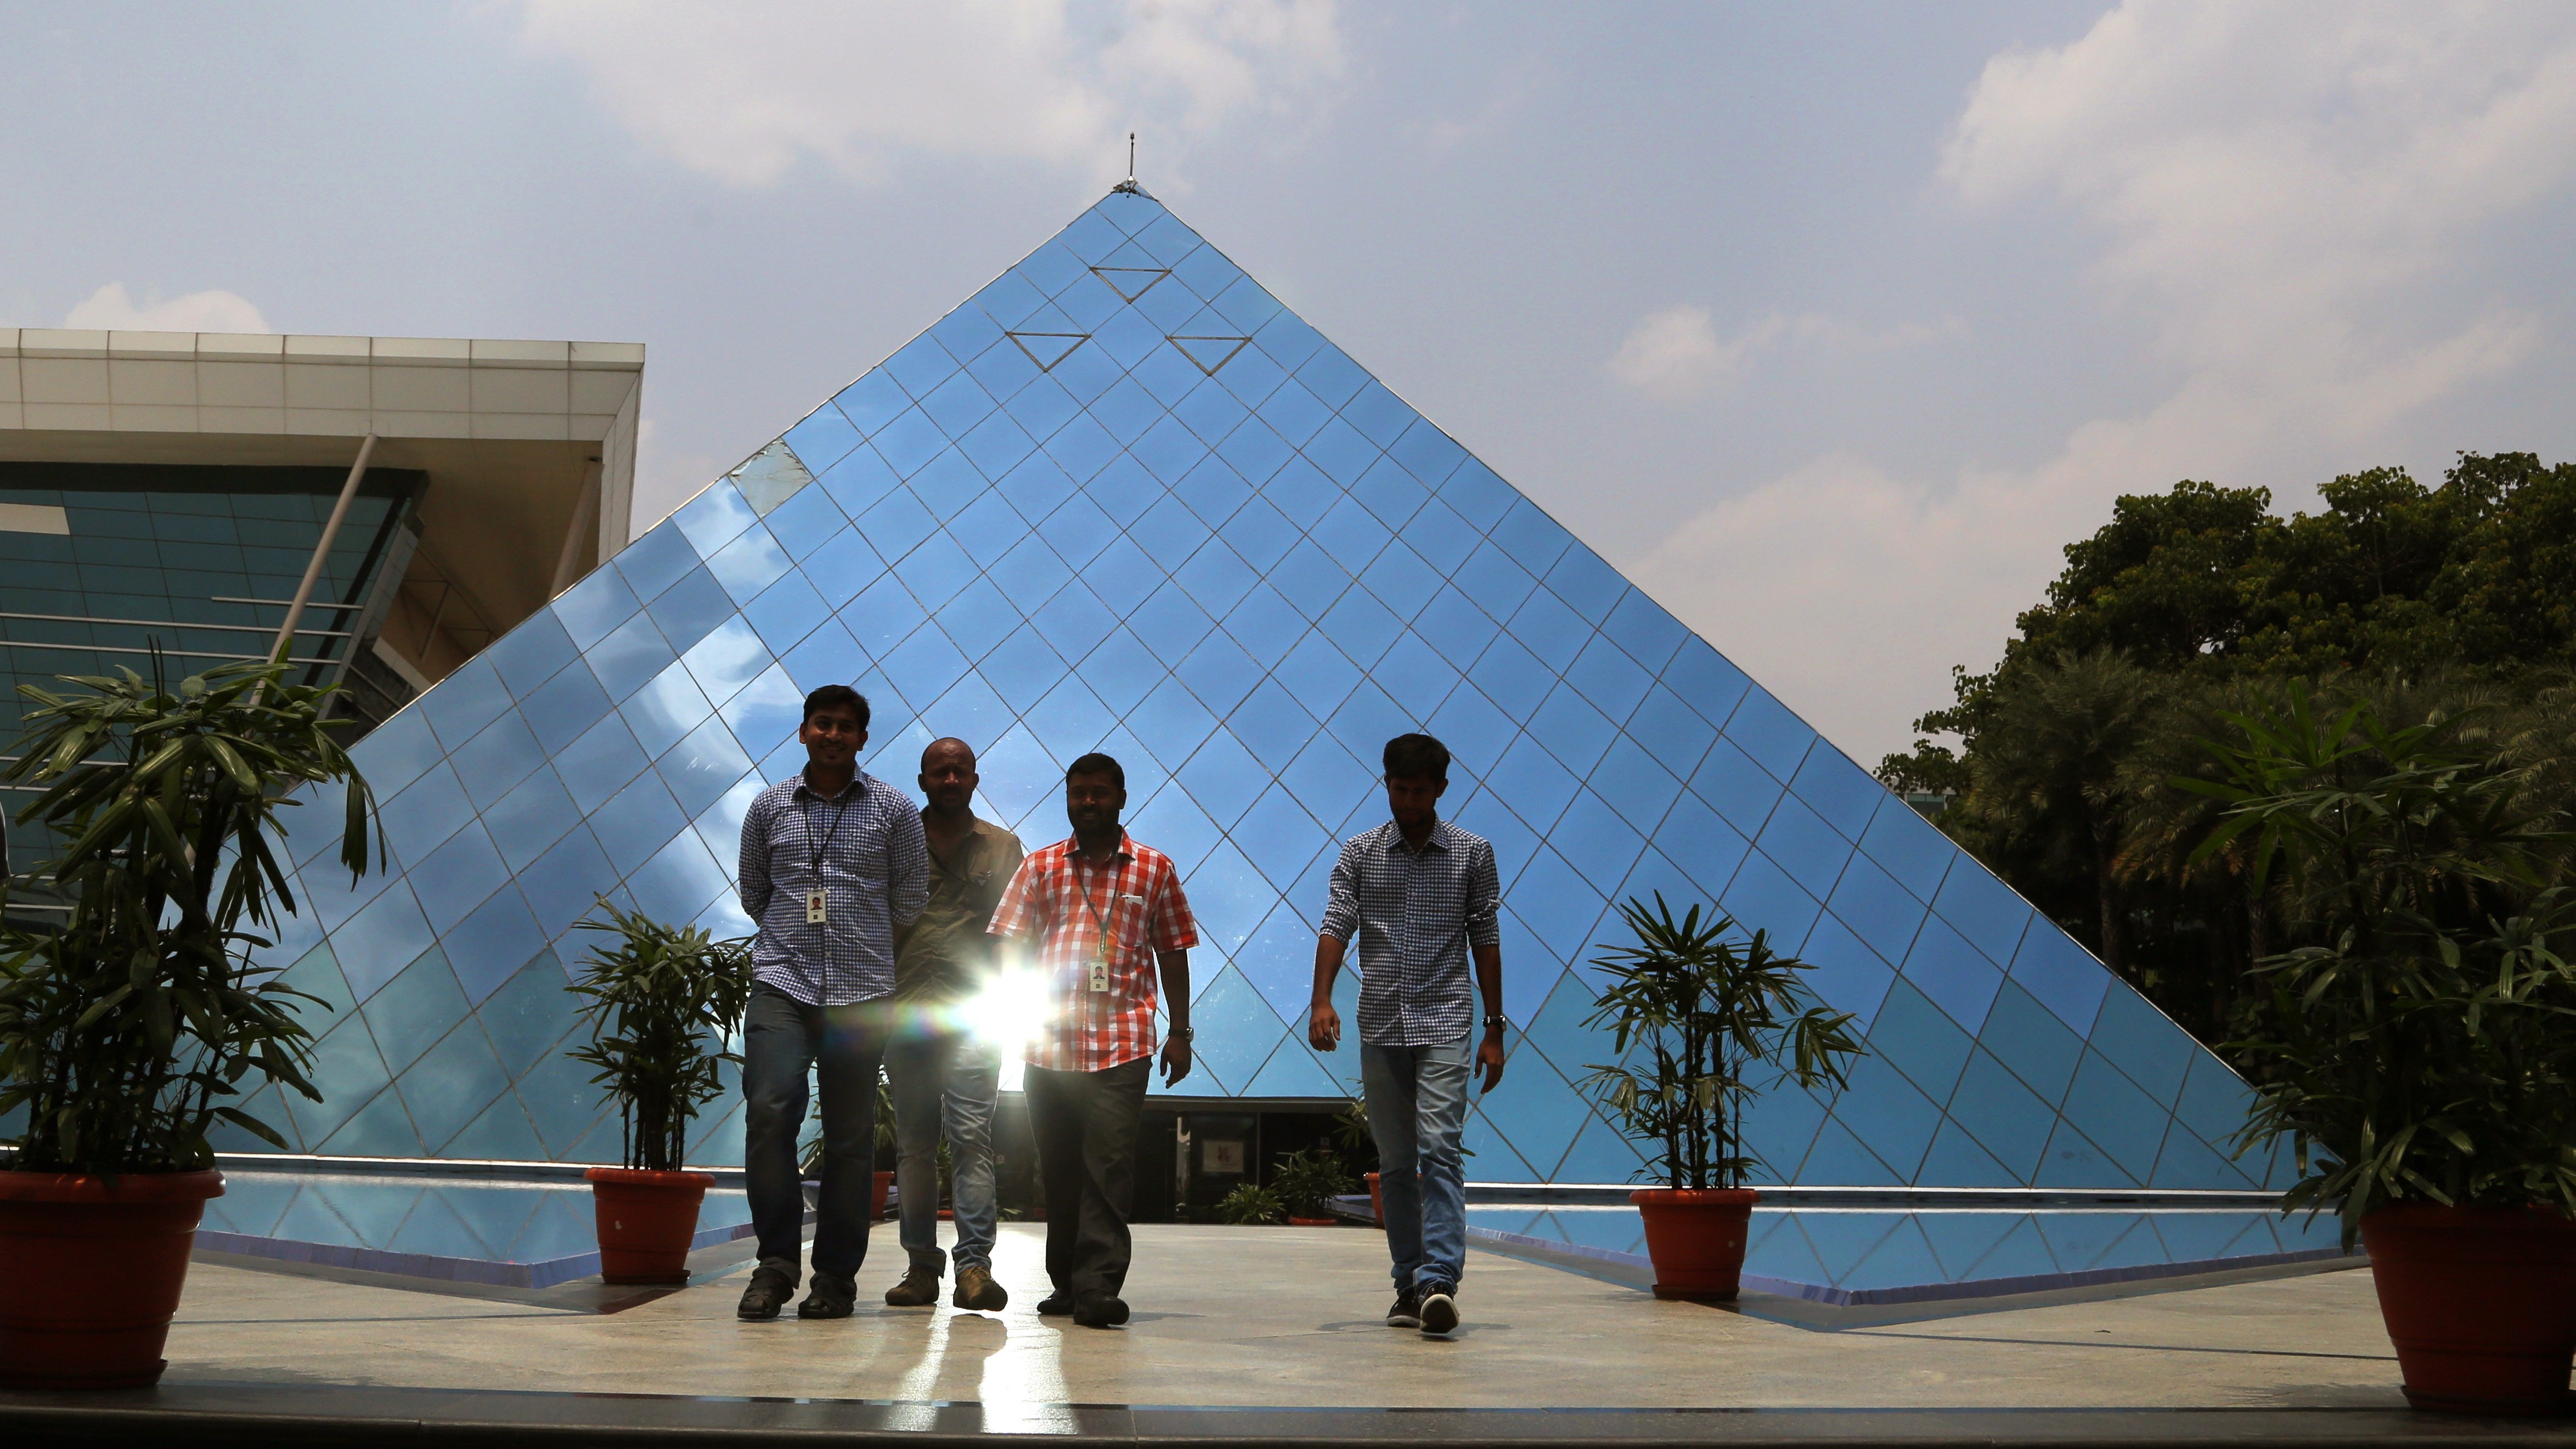 Infosys employees leave a pyramid shaped building at their company's headquarters in Bangalore, India, Friday, April 15, 2016. (AP Photo/Aijaz Rahi)